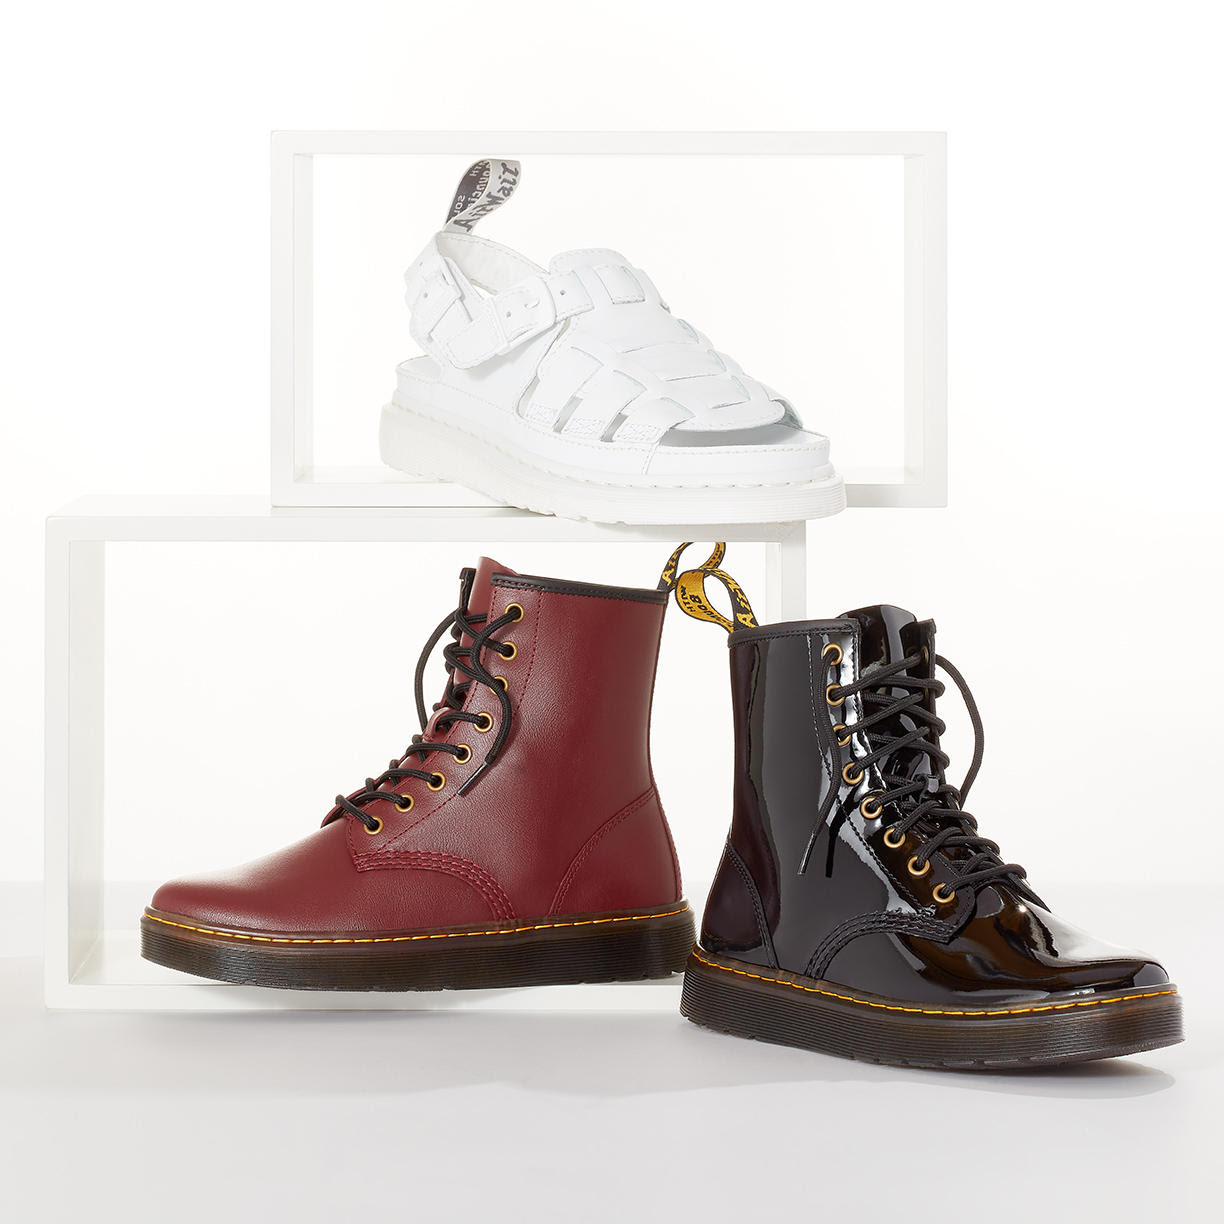 Nordstrom Rack: Dr. Martens Women's Shoes | Reiss Up to 70% Off | Make a Splash: Waterproof Shoes for Her Up to 60% Off | Summer Luggage Under $100 | And more on sale now!